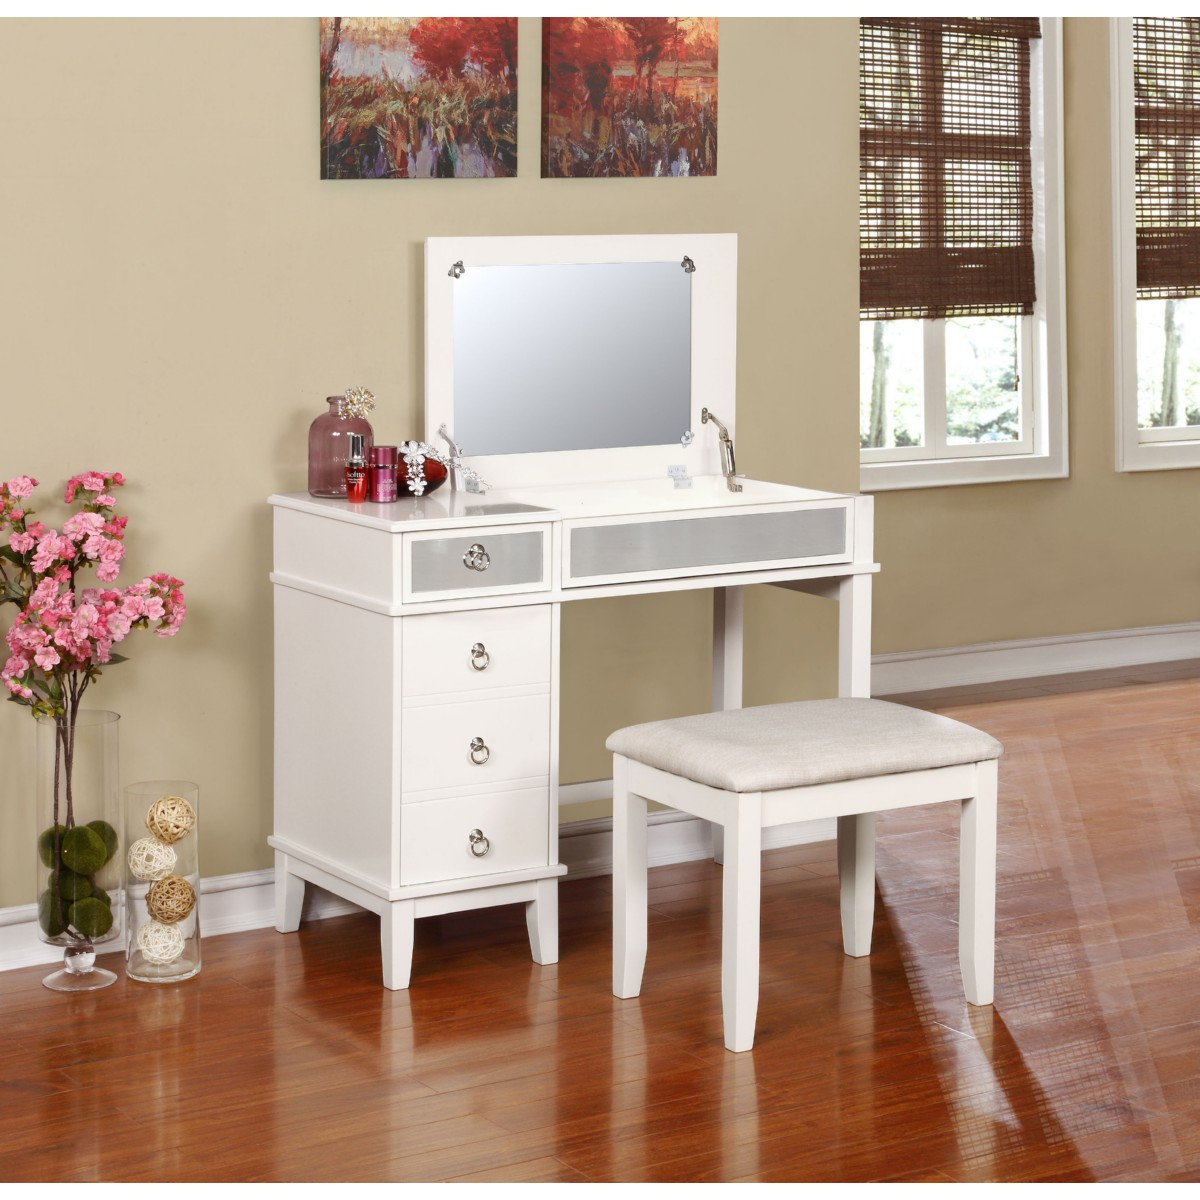 Mirrored Vanity Set | Vanity Makeup Desk | Bathroom Vanity Sets with Mirror